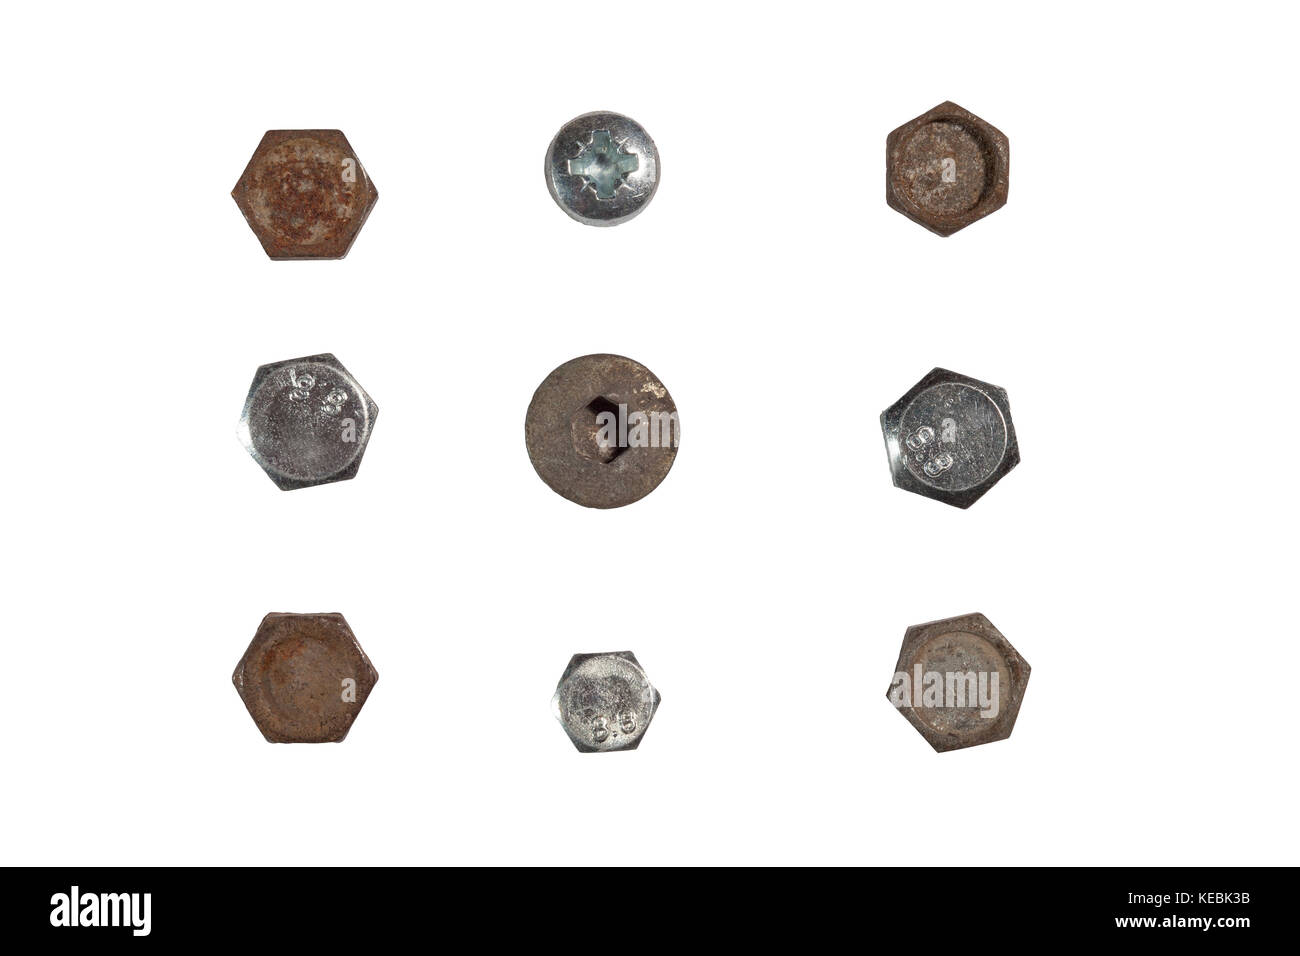 A pile of nuts,bolts, screws and other fasteners on a white background - Stock Image